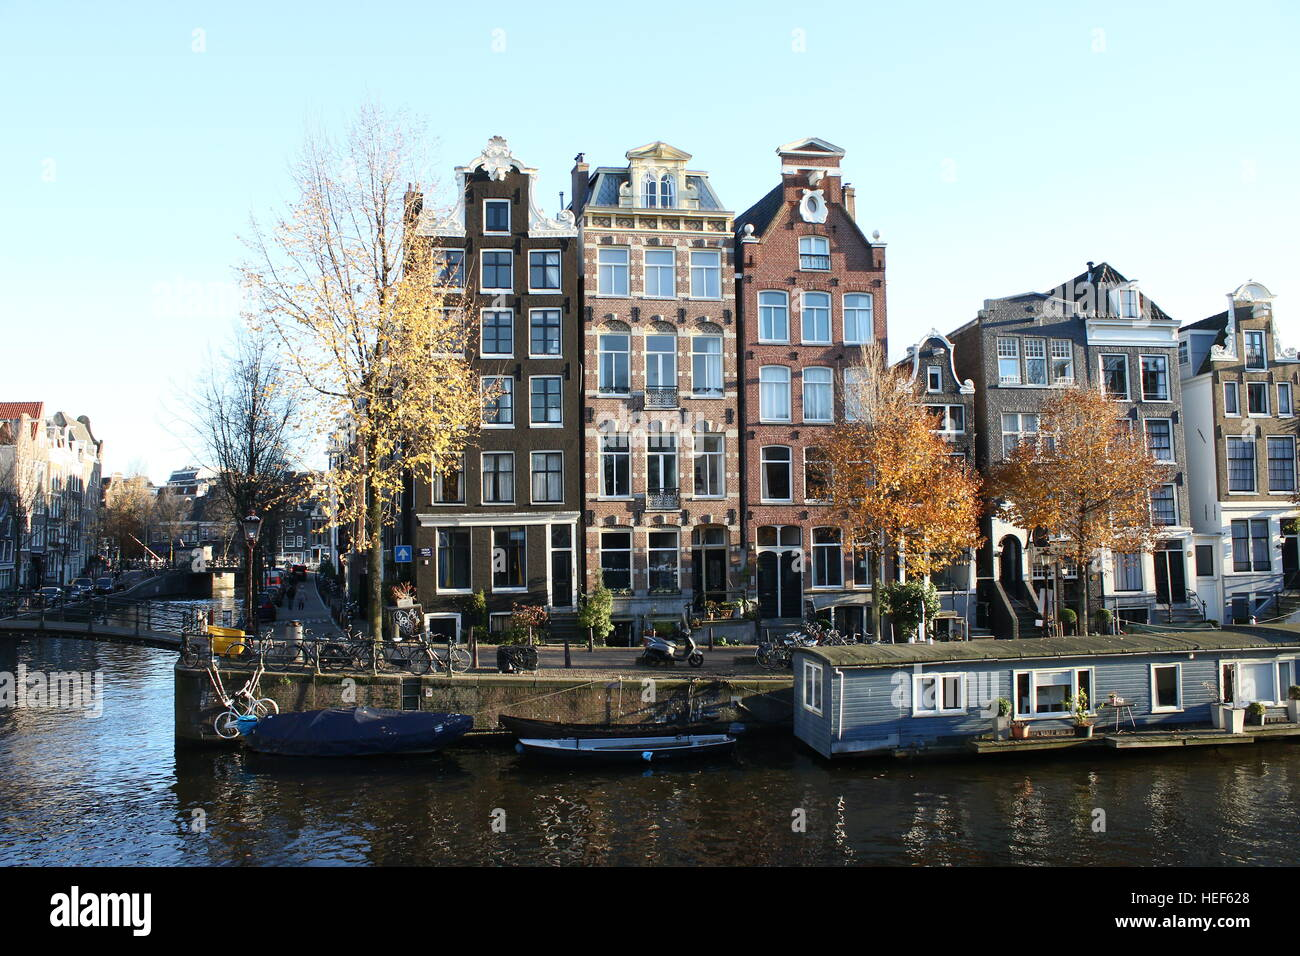 Amsterdam canal winter stock photos amsterdam canal for Herengracht amsterdam